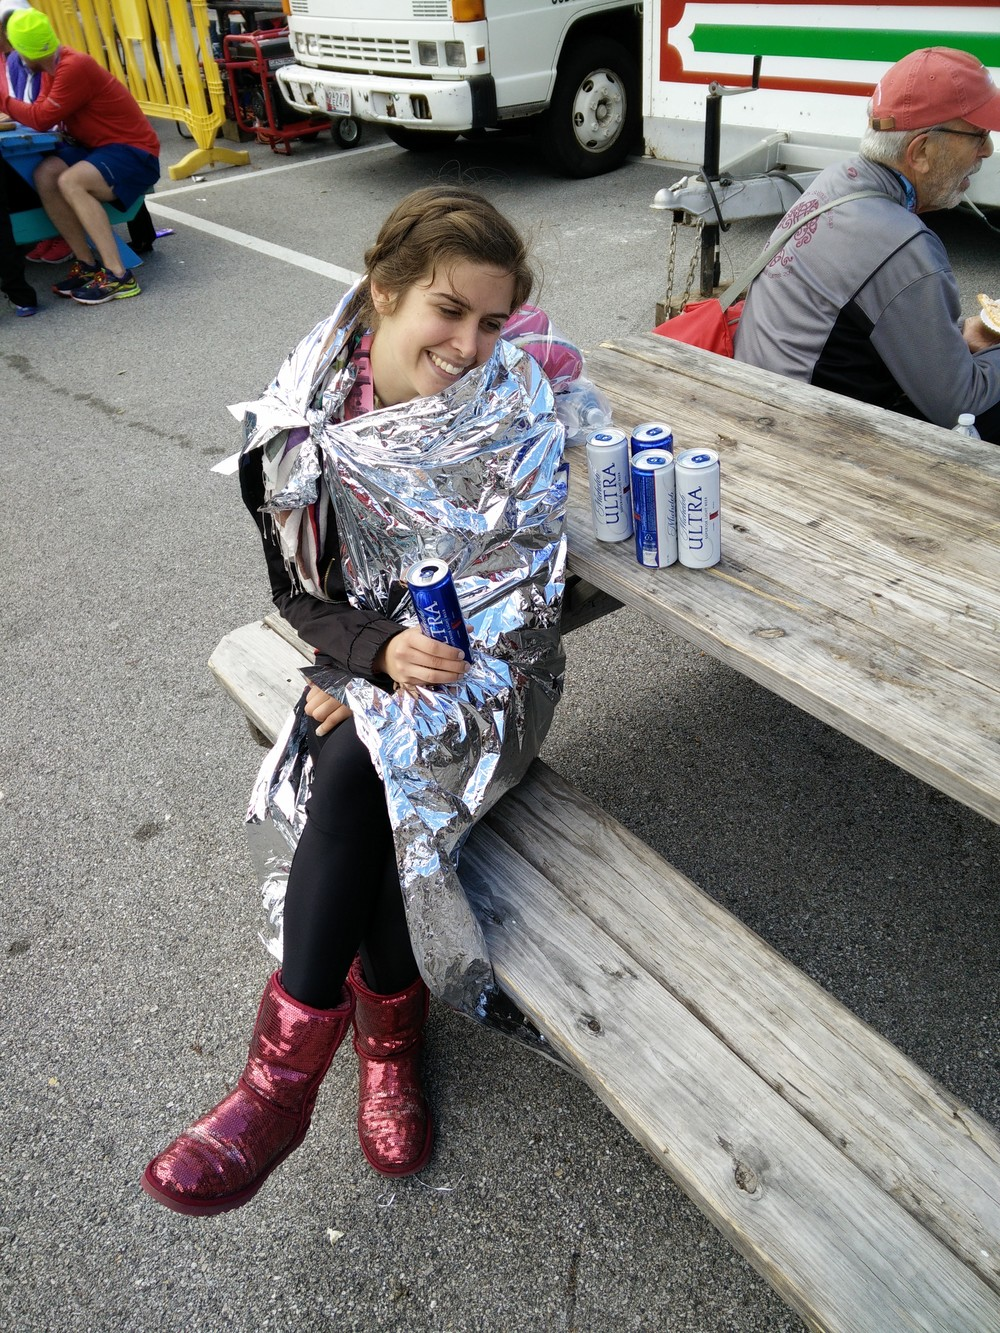 Alana chillaxin' with some free Michelob Ultra in a mylar cape and sparkly red Uggs after a PR finish.